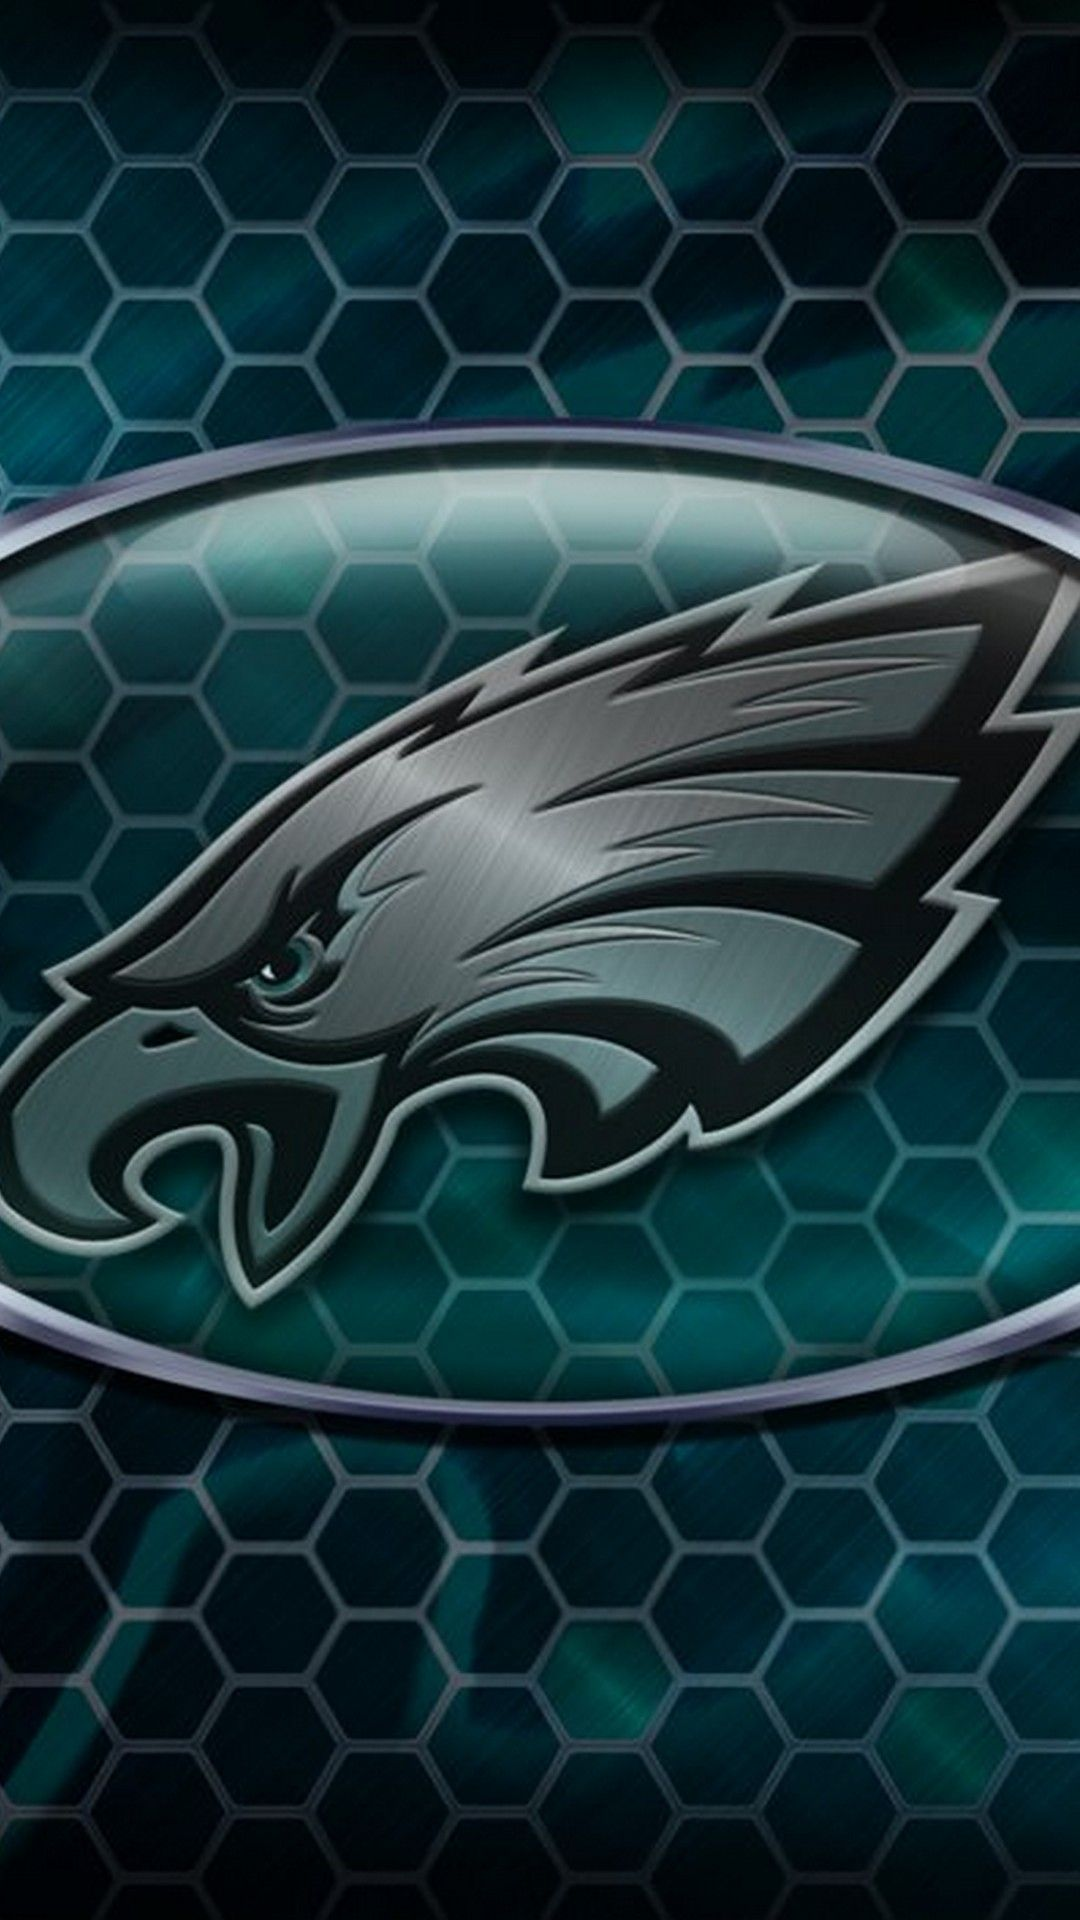 Wallpaper Eagles Football iPhone 7 plus wallpaper